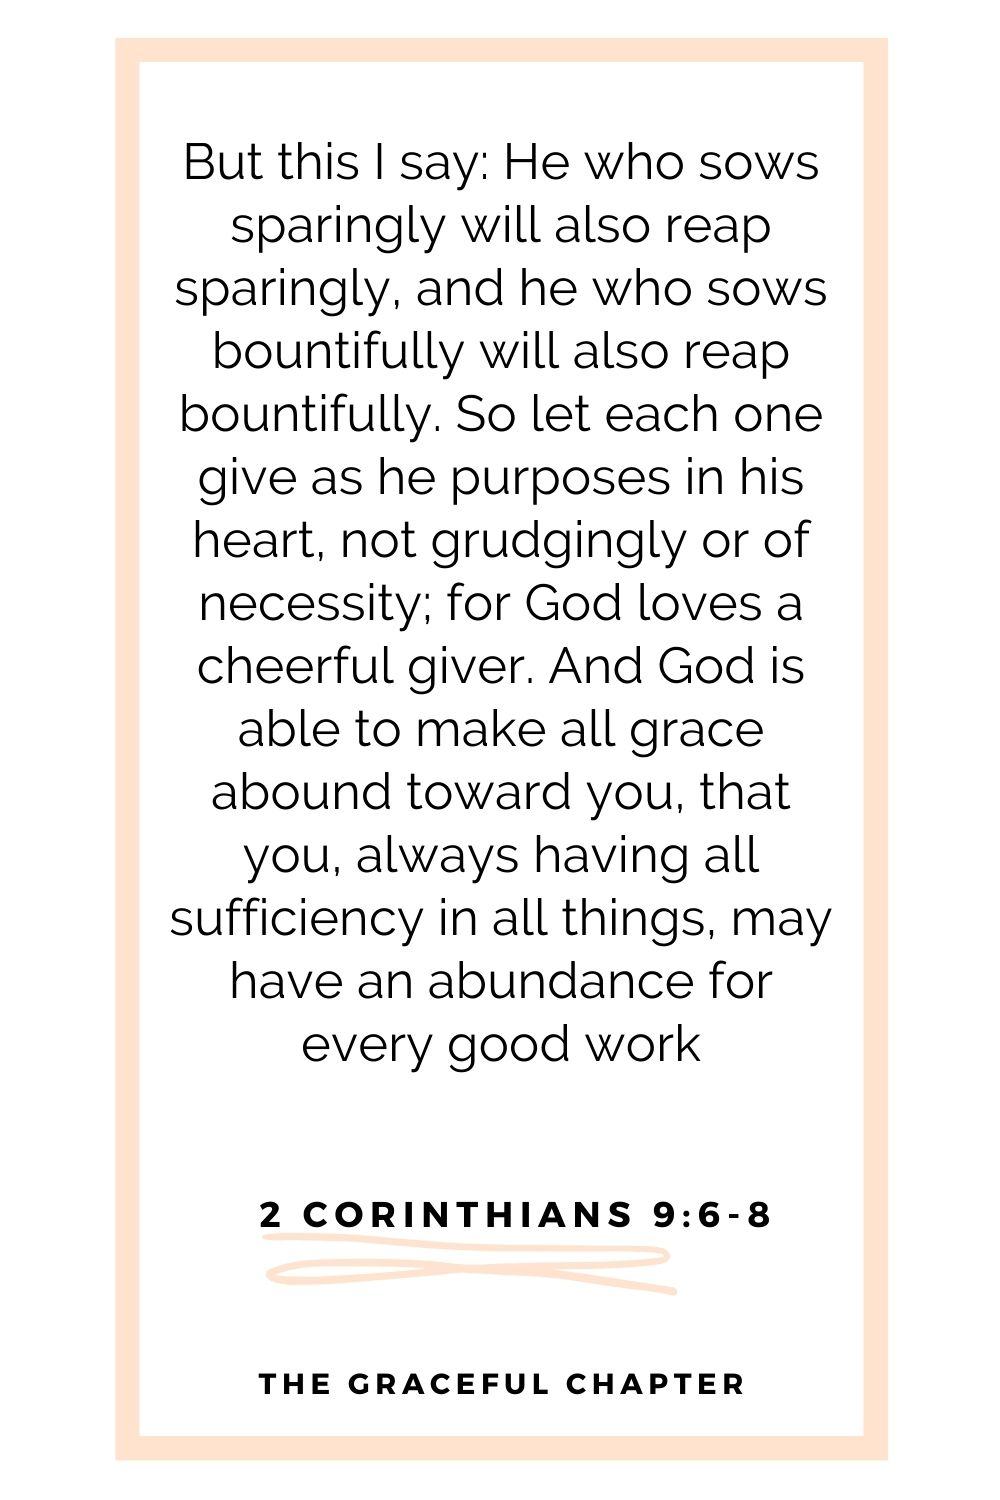 But this I say: He who sows sparingly will also reap sparingly, and he who sows bountifully will also reap bountifully. So let each one give as he purposes in his heart, not grudgingly or of necessity; for God loves a cheerful giver. And God is able to make all grace abound toward you, that you, always having all sufficiency in all things, may have an abundance for every good work 2 Corinthians 9:6-8